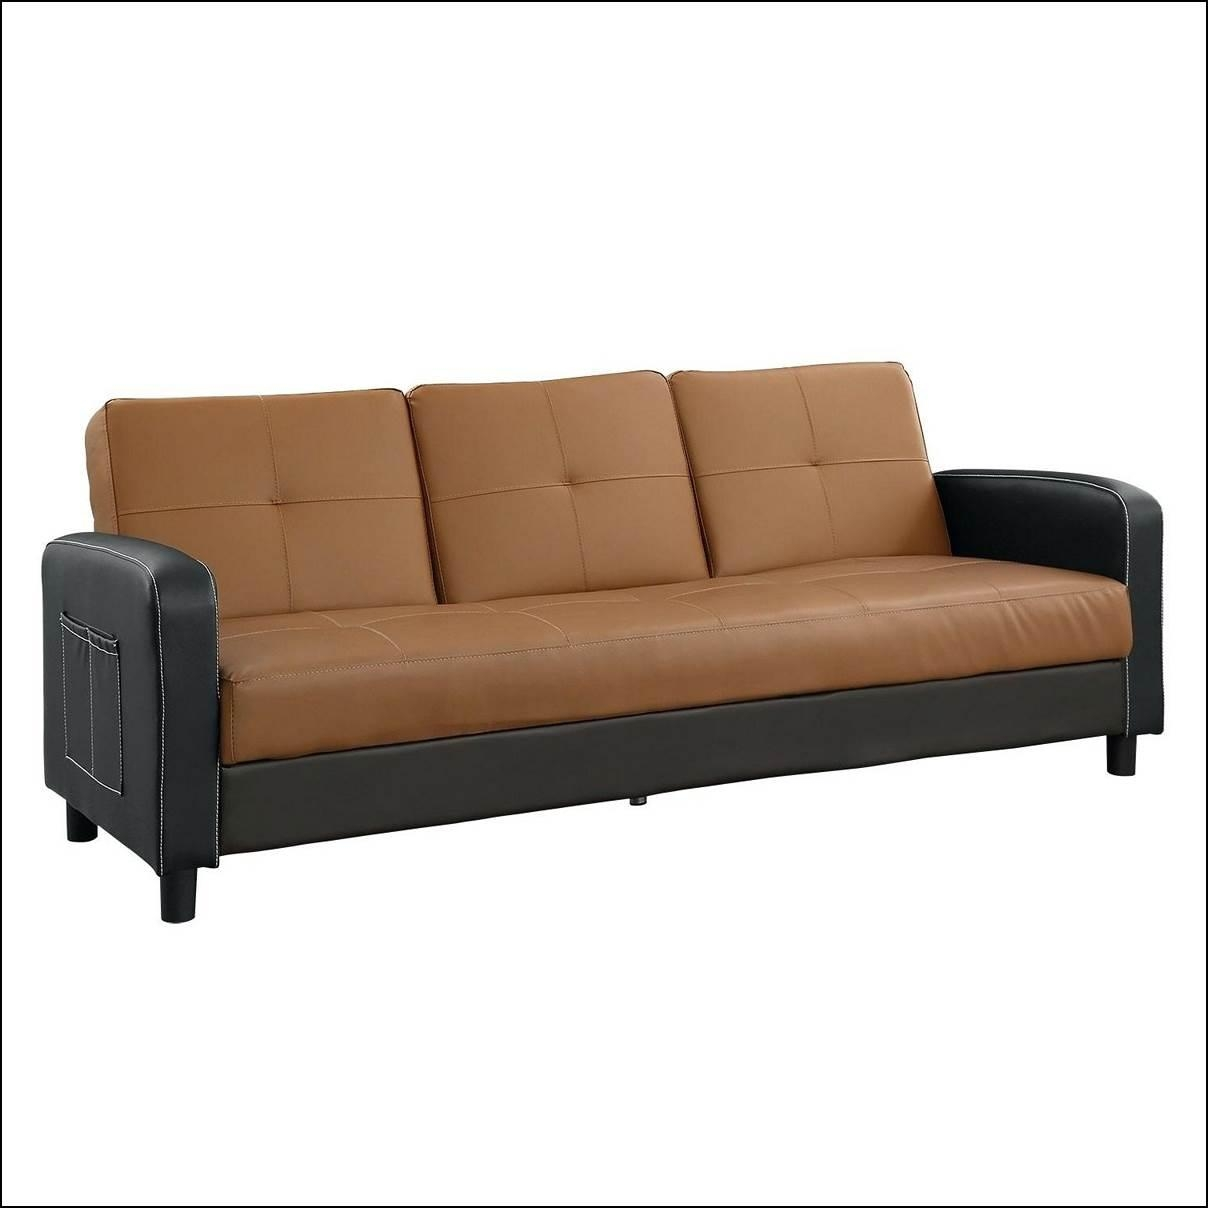 27 Gallery Of Best Sleeper Sofas And Sofa Beds | Best Living Room Regarding Leather Corner Sofas (Image 2 of 20)